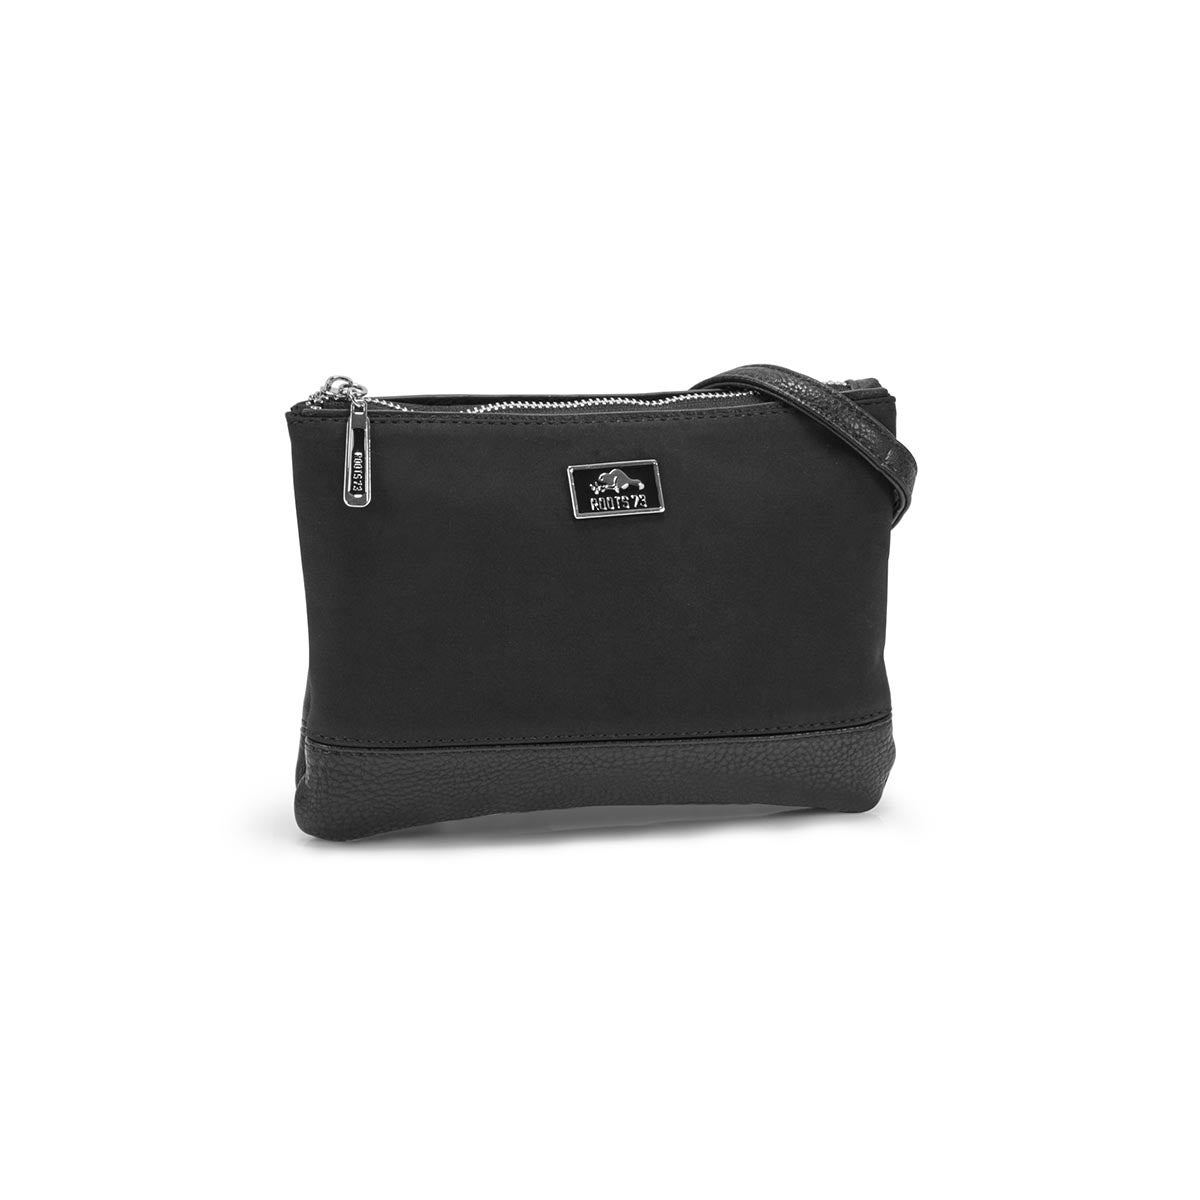 Women's R5357 black crossbody bag